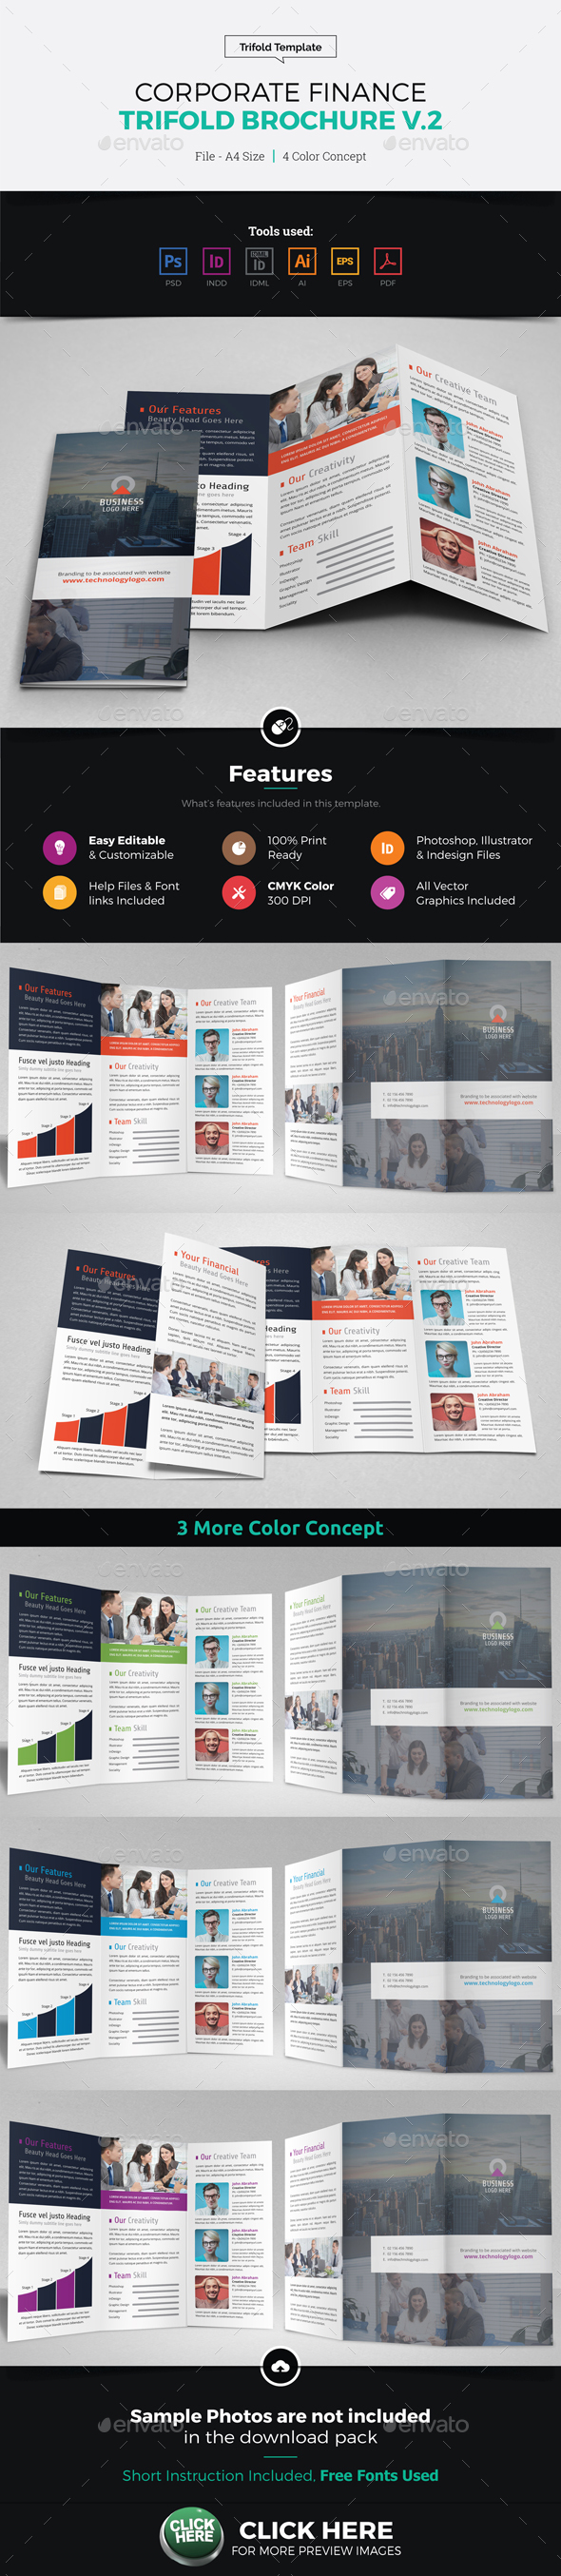 Corporate Finance Trifold Brochure v2 - Corporate Brochures